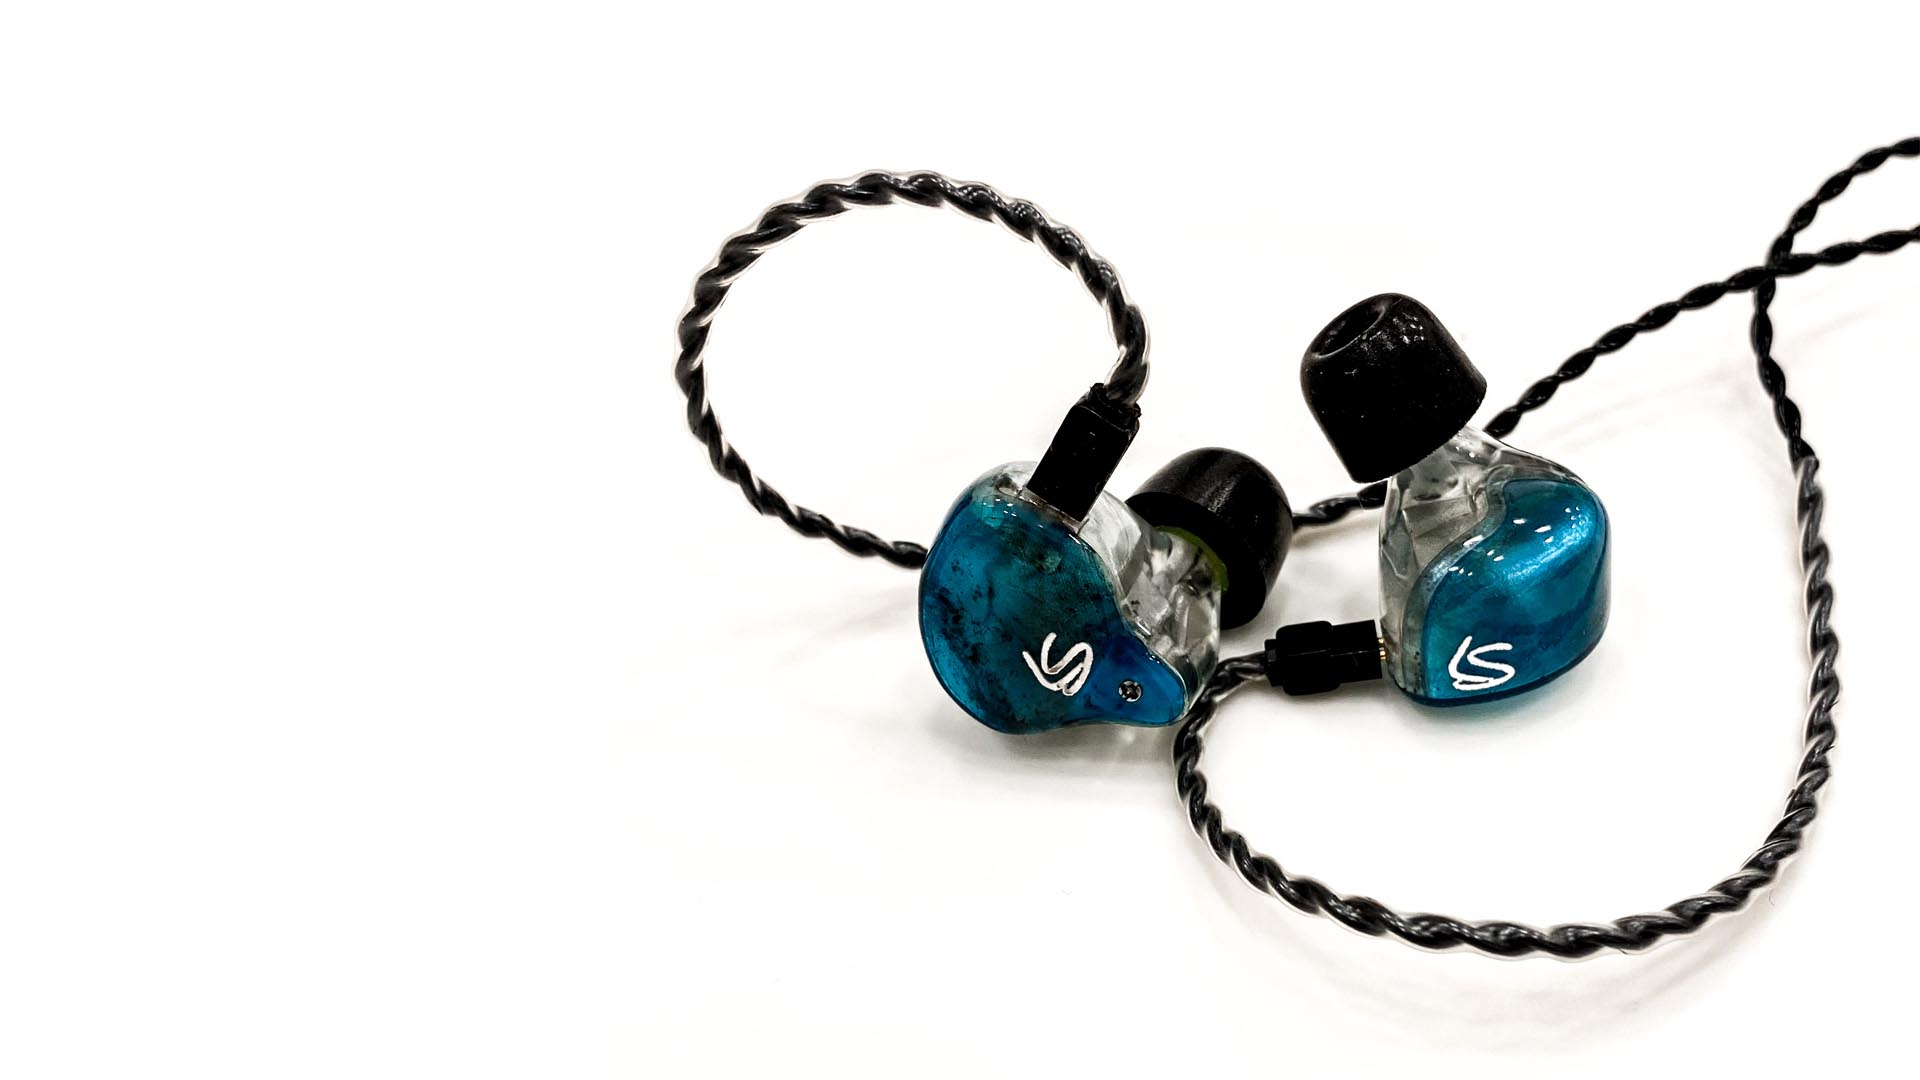 custom iem 7 driver lake sound grace best iem